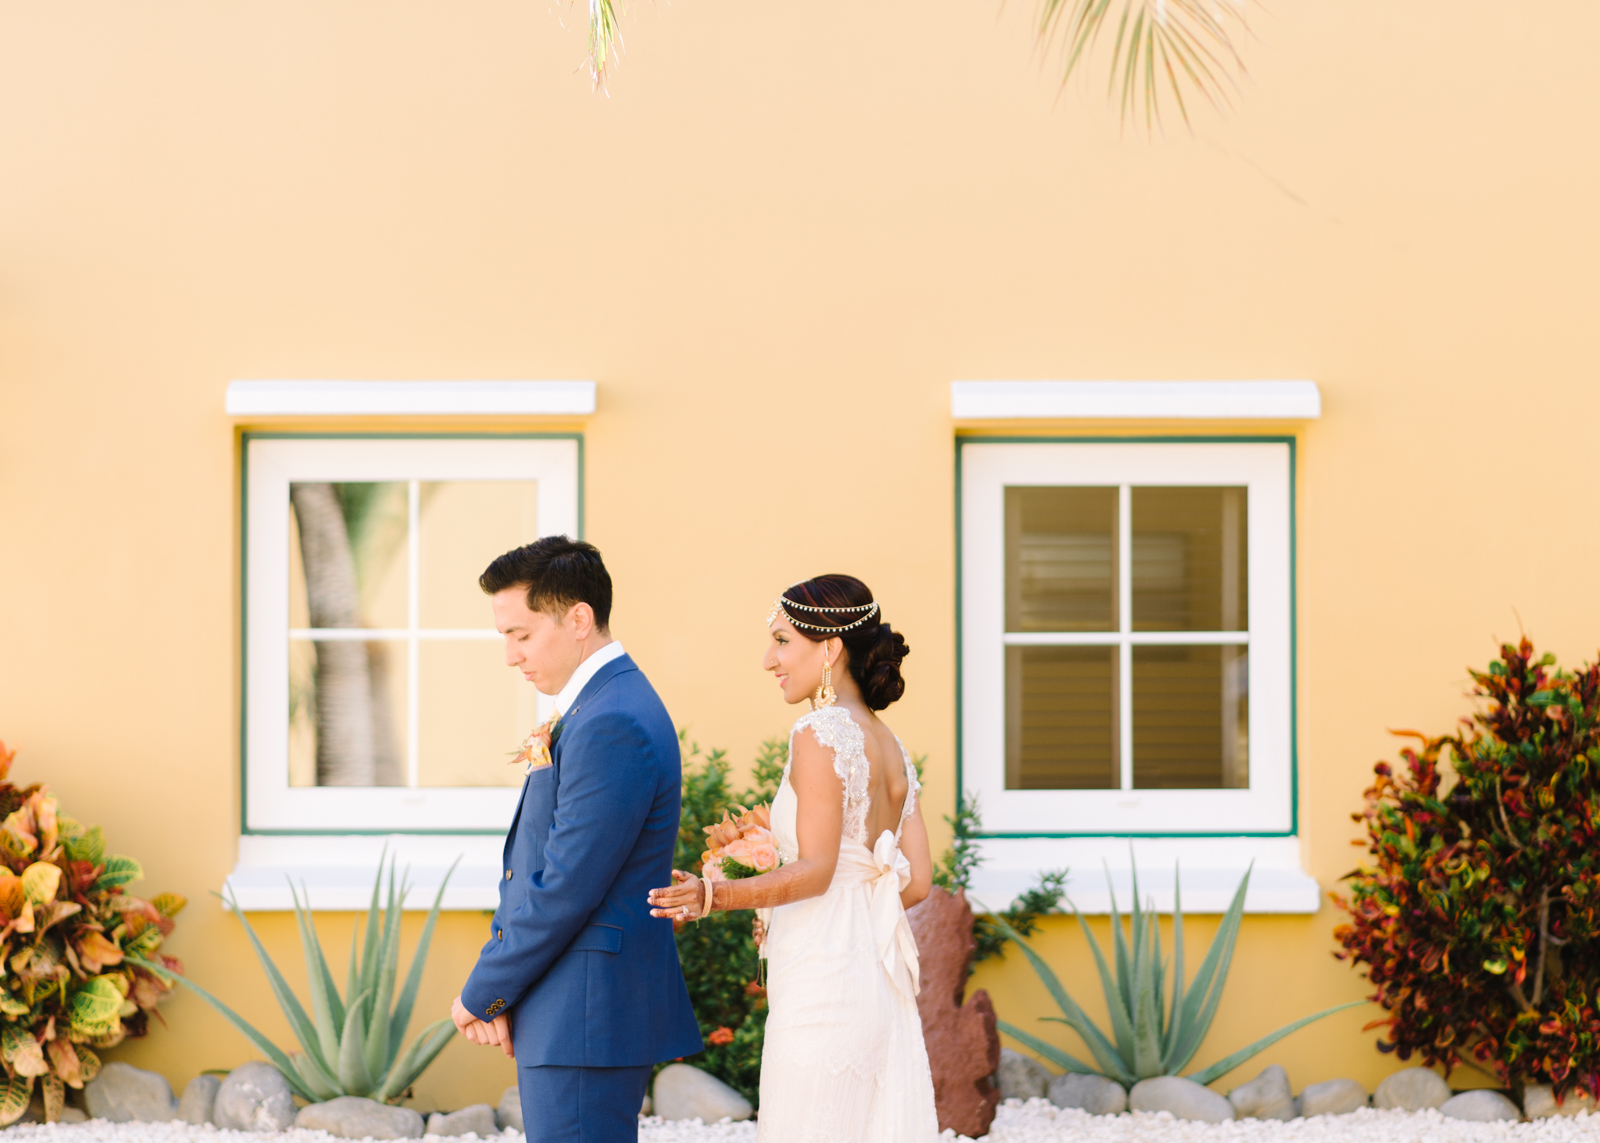 tara mcmullen photography amsterdam manor hotel wedding in aruba best wedding venue in aruba destination wedding photographer aruba indian wedding in aruba-007